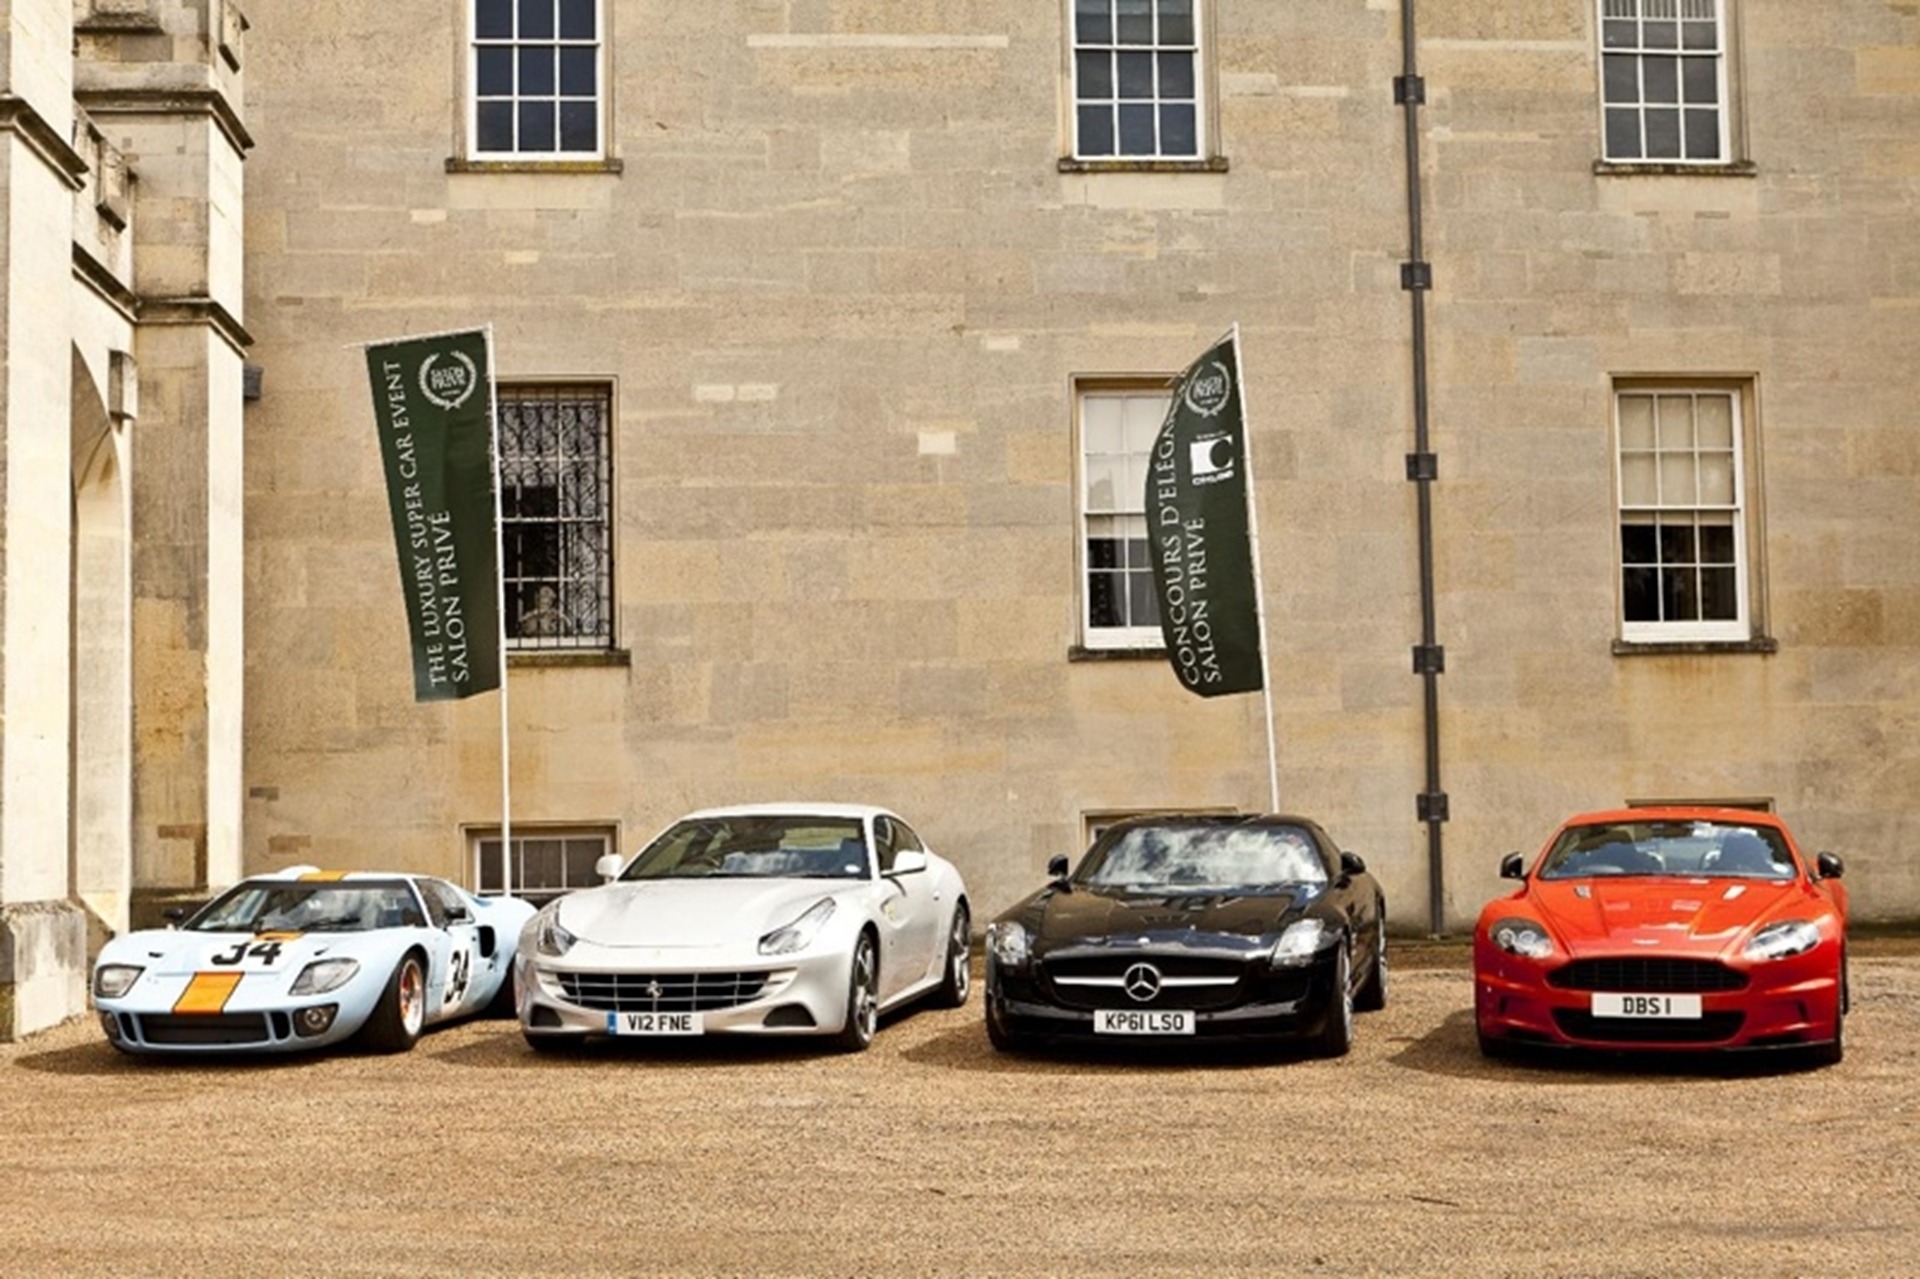 Salon Prive UK